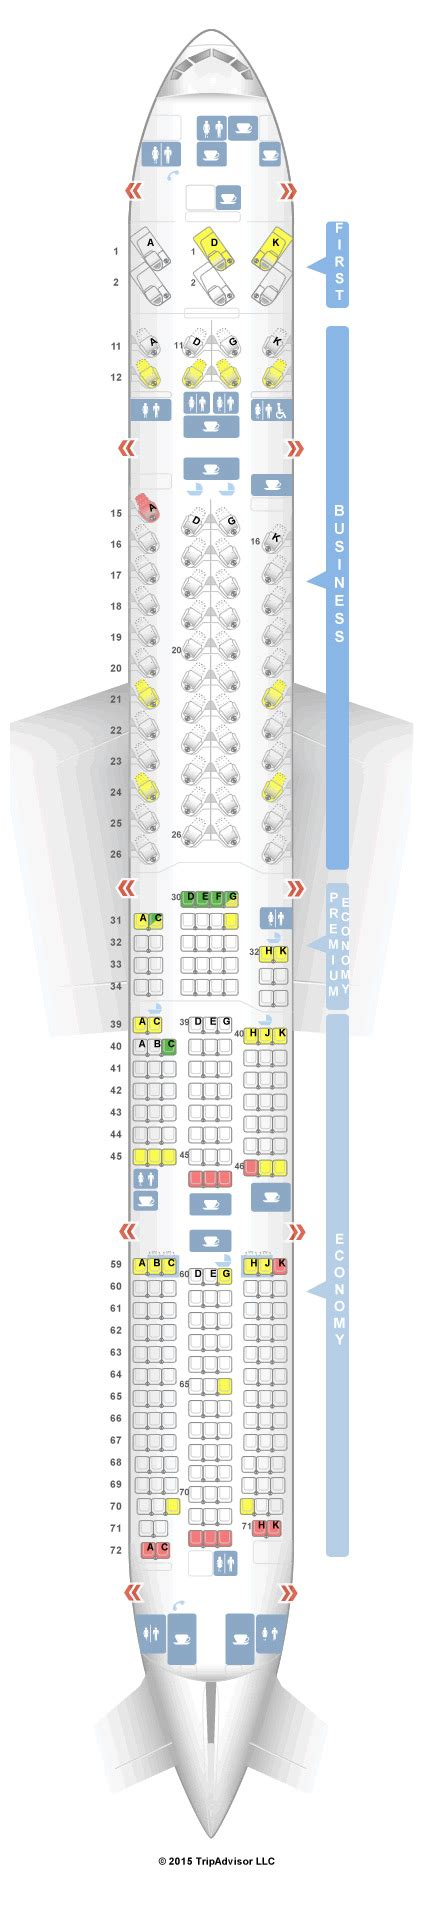 boeing 777 300er seat map seatguru seat map cathay pacific boeing 777 300er 77h four class travel boeing 777